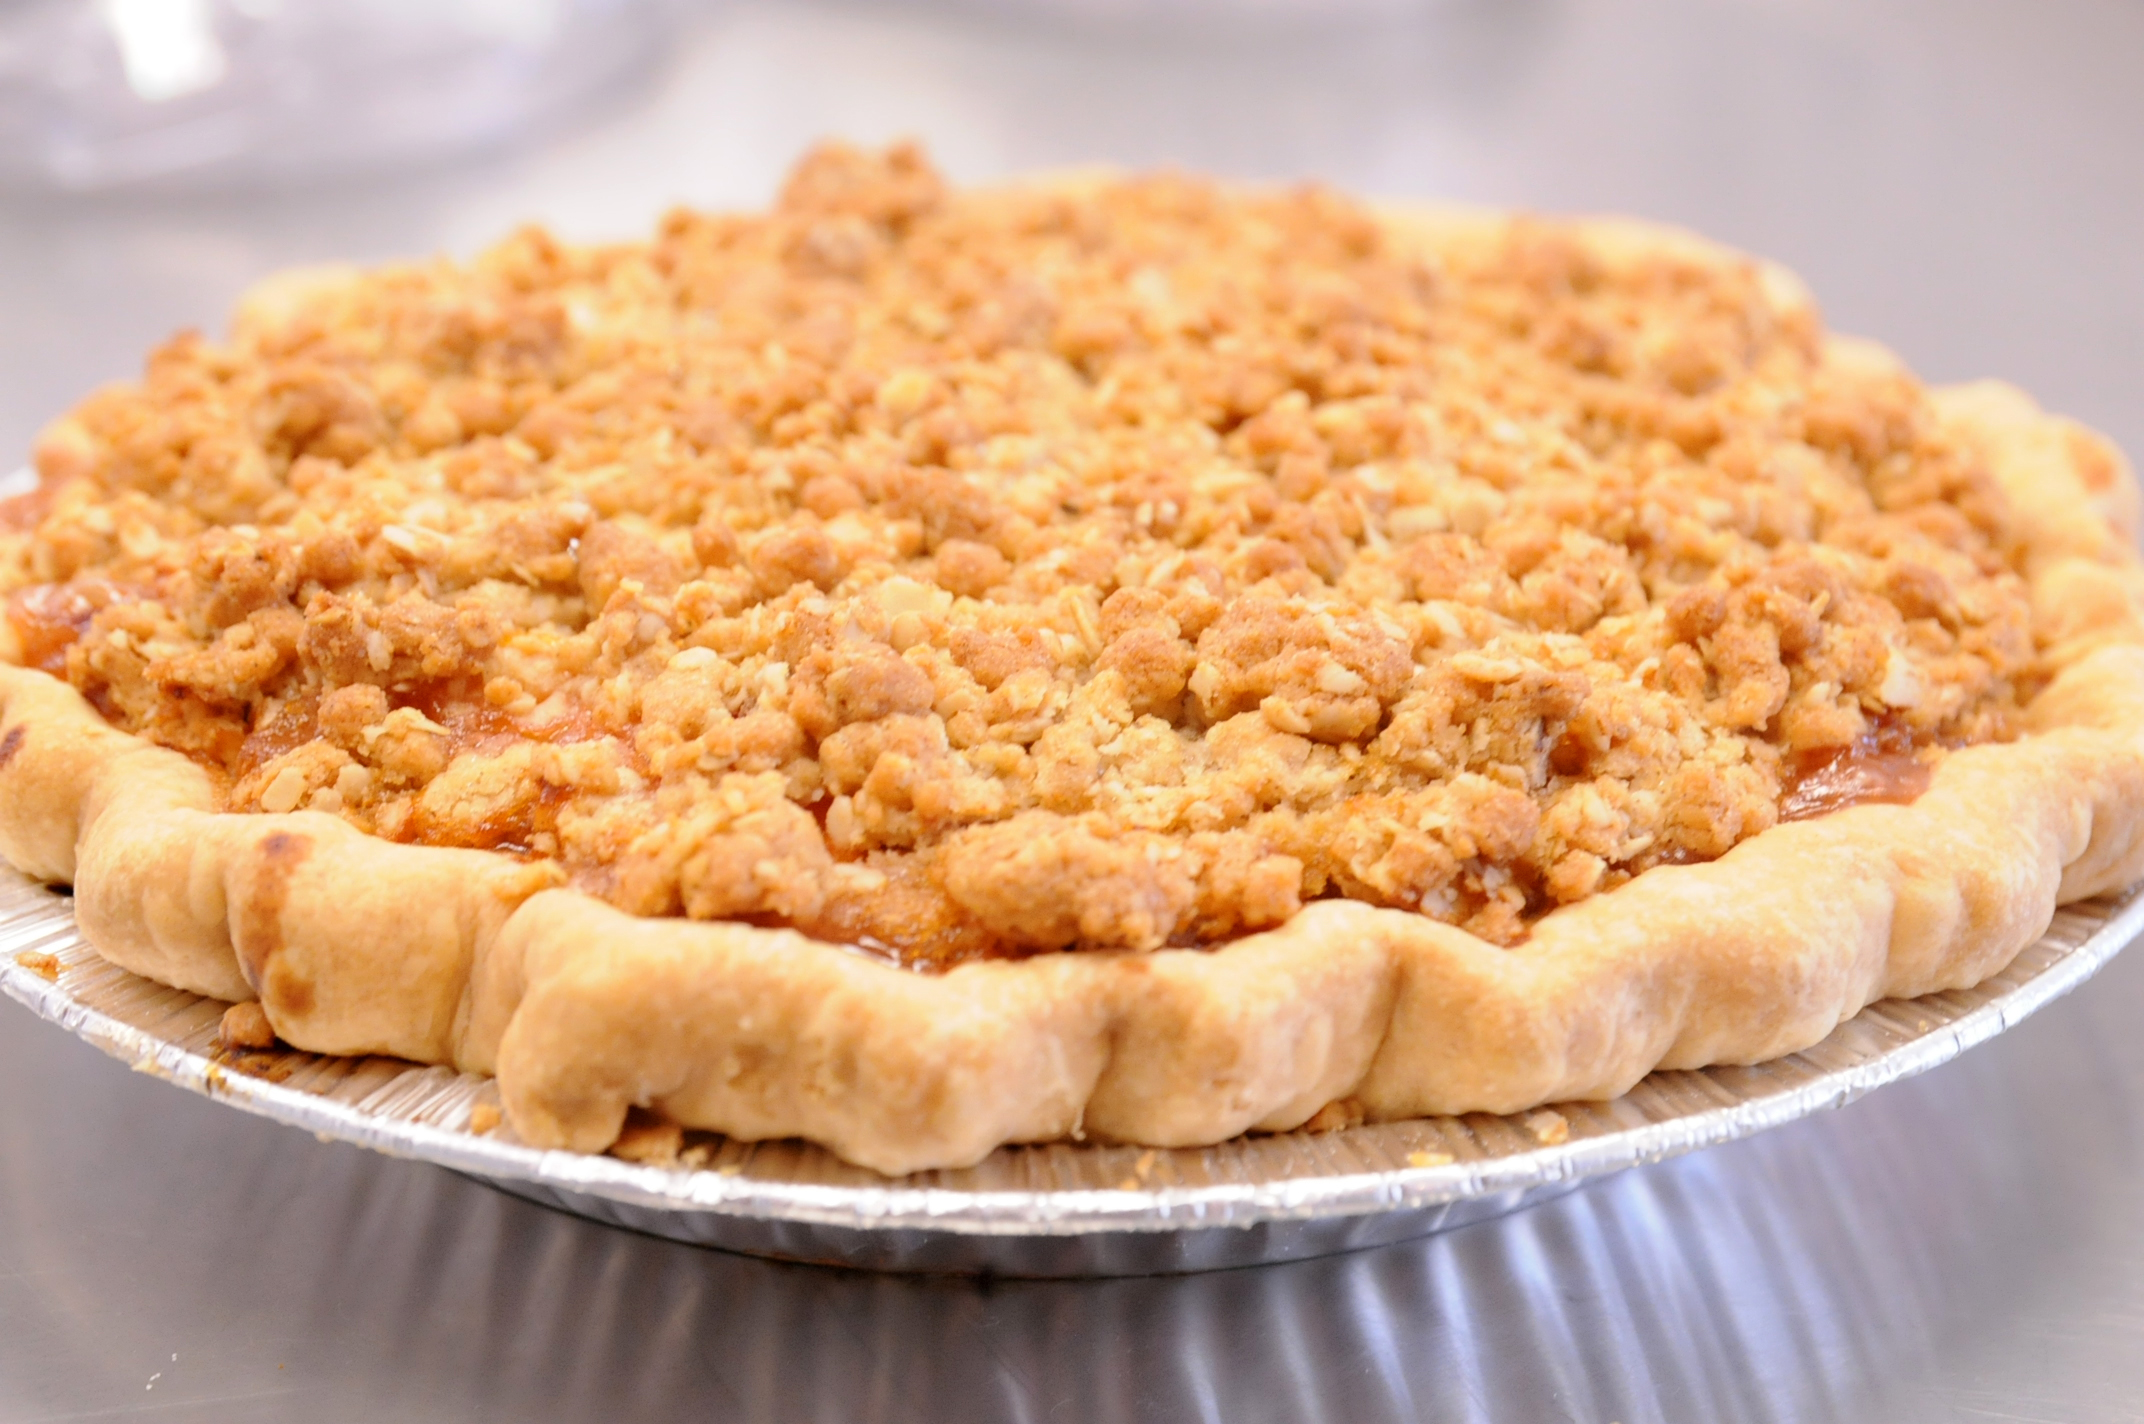 January's Pie Of The Month: Cinnamon Apple Crumble